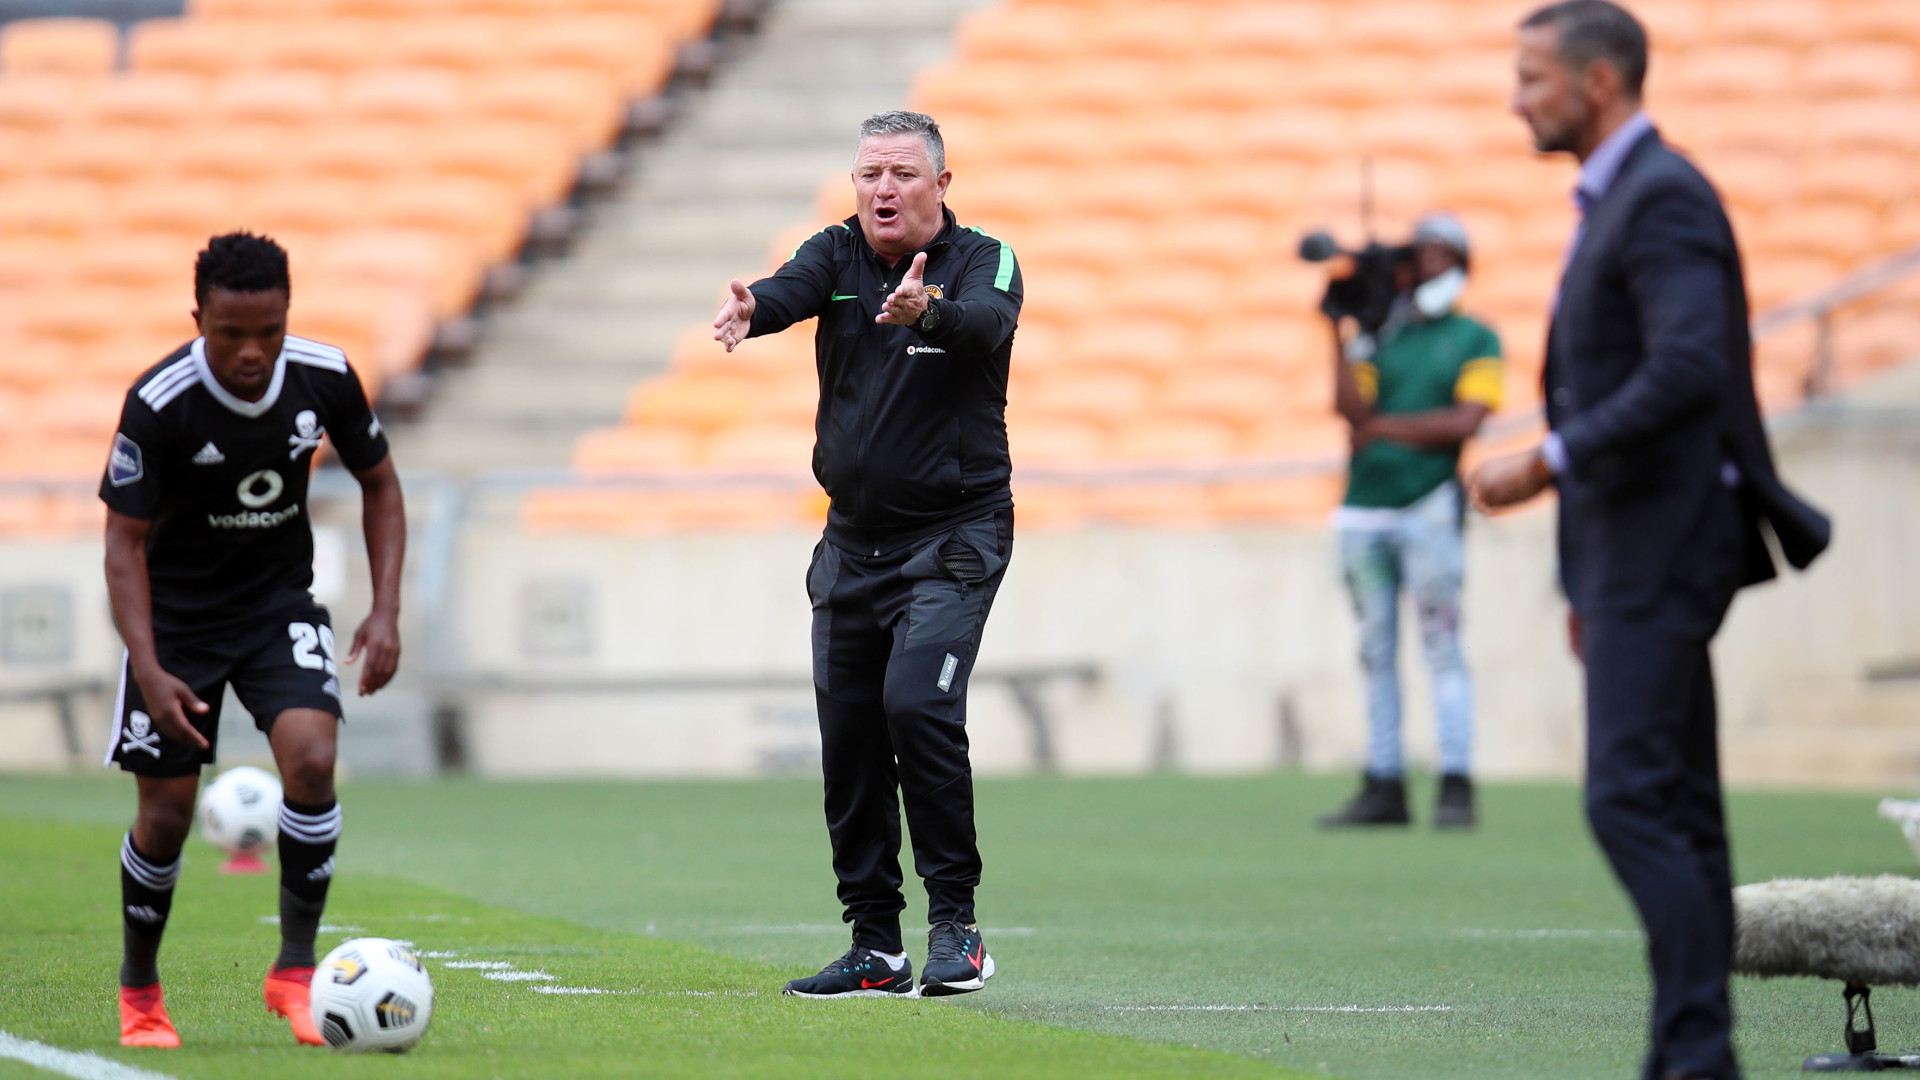 'We should be up for every game' – Hunt cautions Kaizer Chiefs players ahead of Mamelodi Sundowns clash | Goal.com